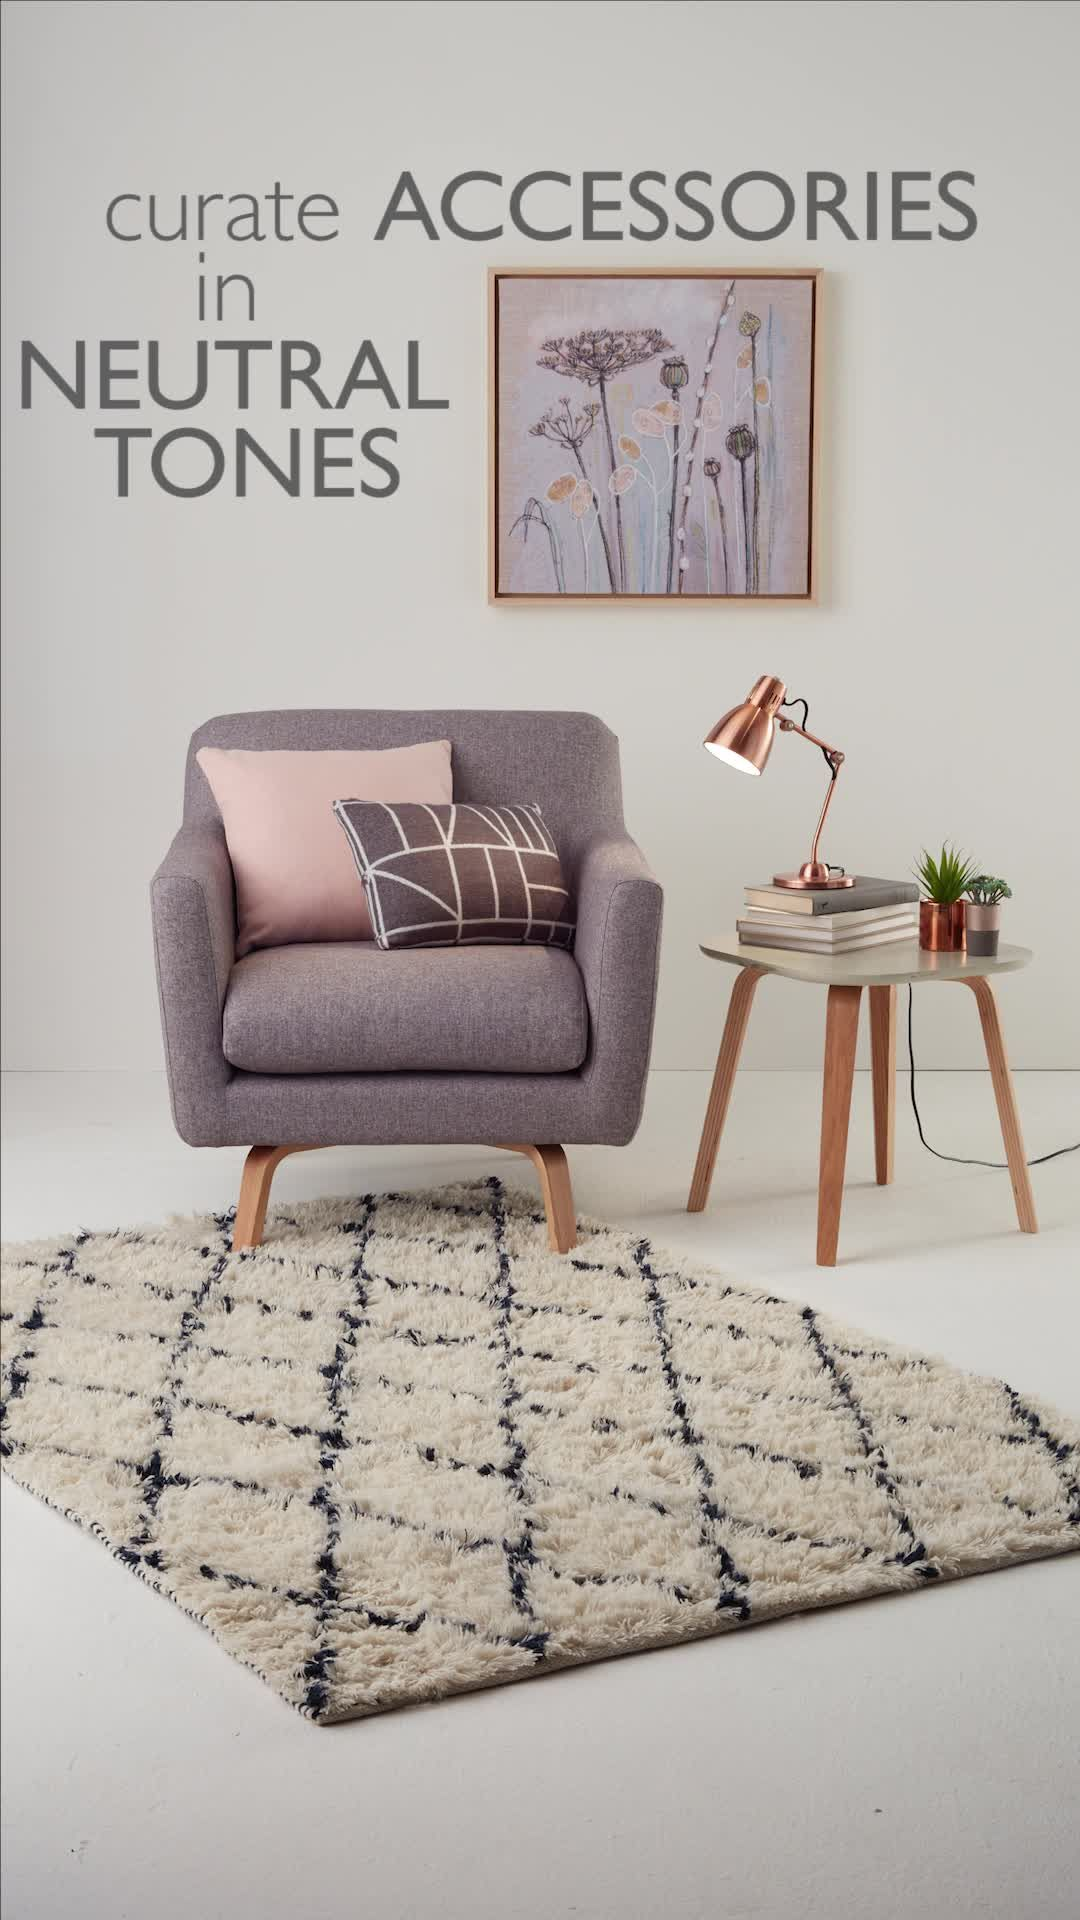 John Lewis & Partners is part of Home decor - Shop for House by John Lewis at John Lewis & Partners  Free Delivery on orders over £50